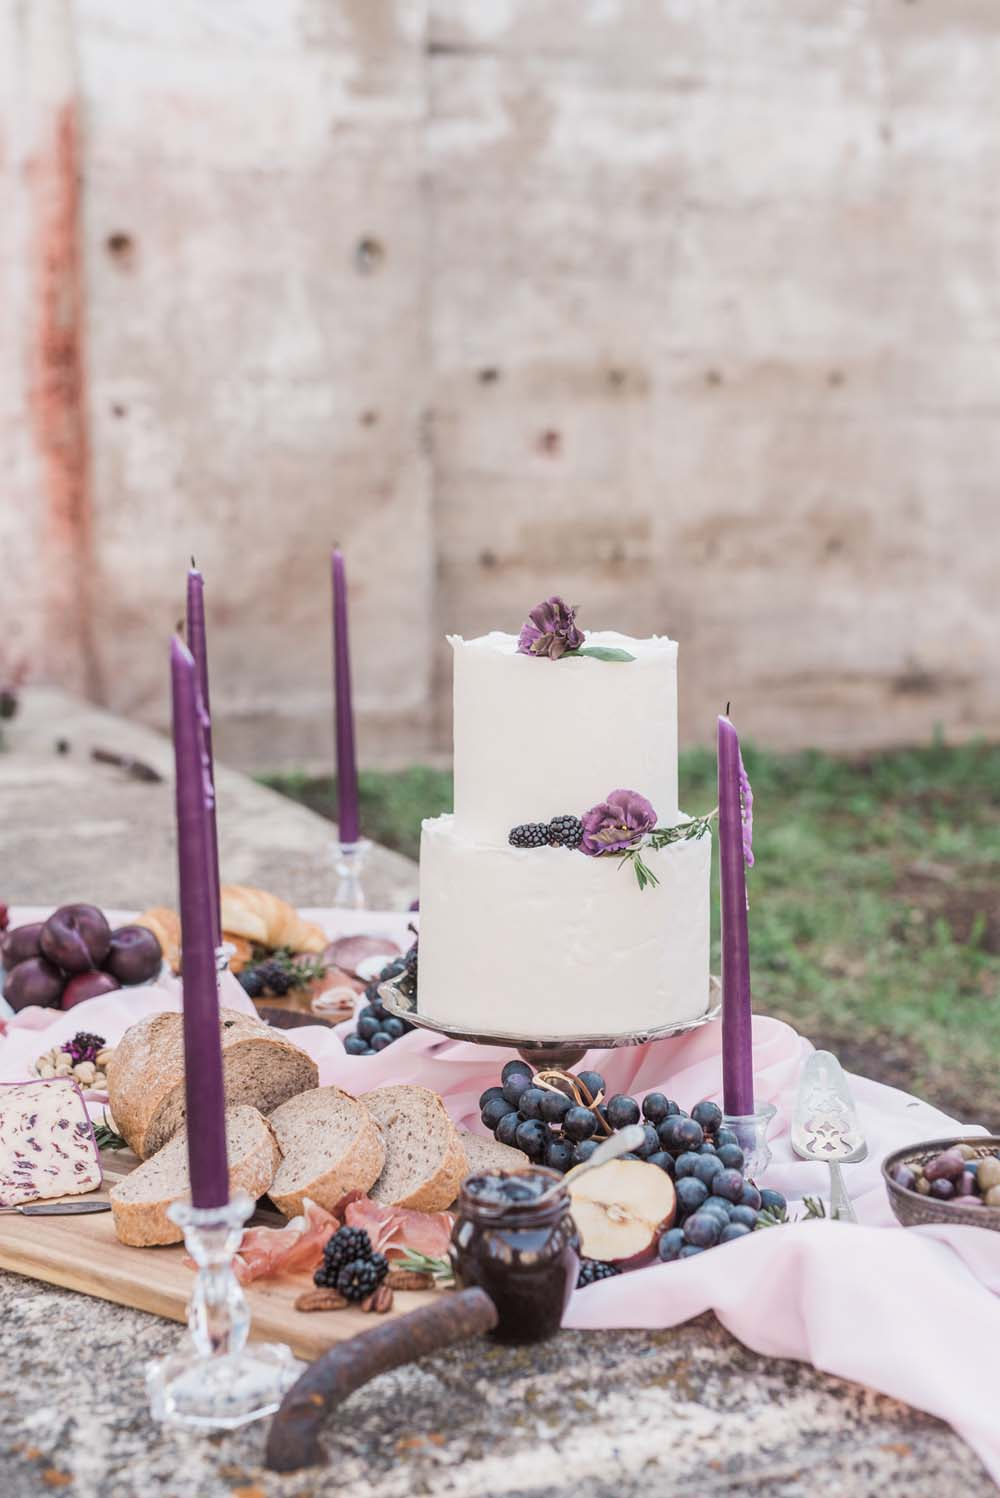 A Romantic Themed Shoot Inspired by Ruins - Cake